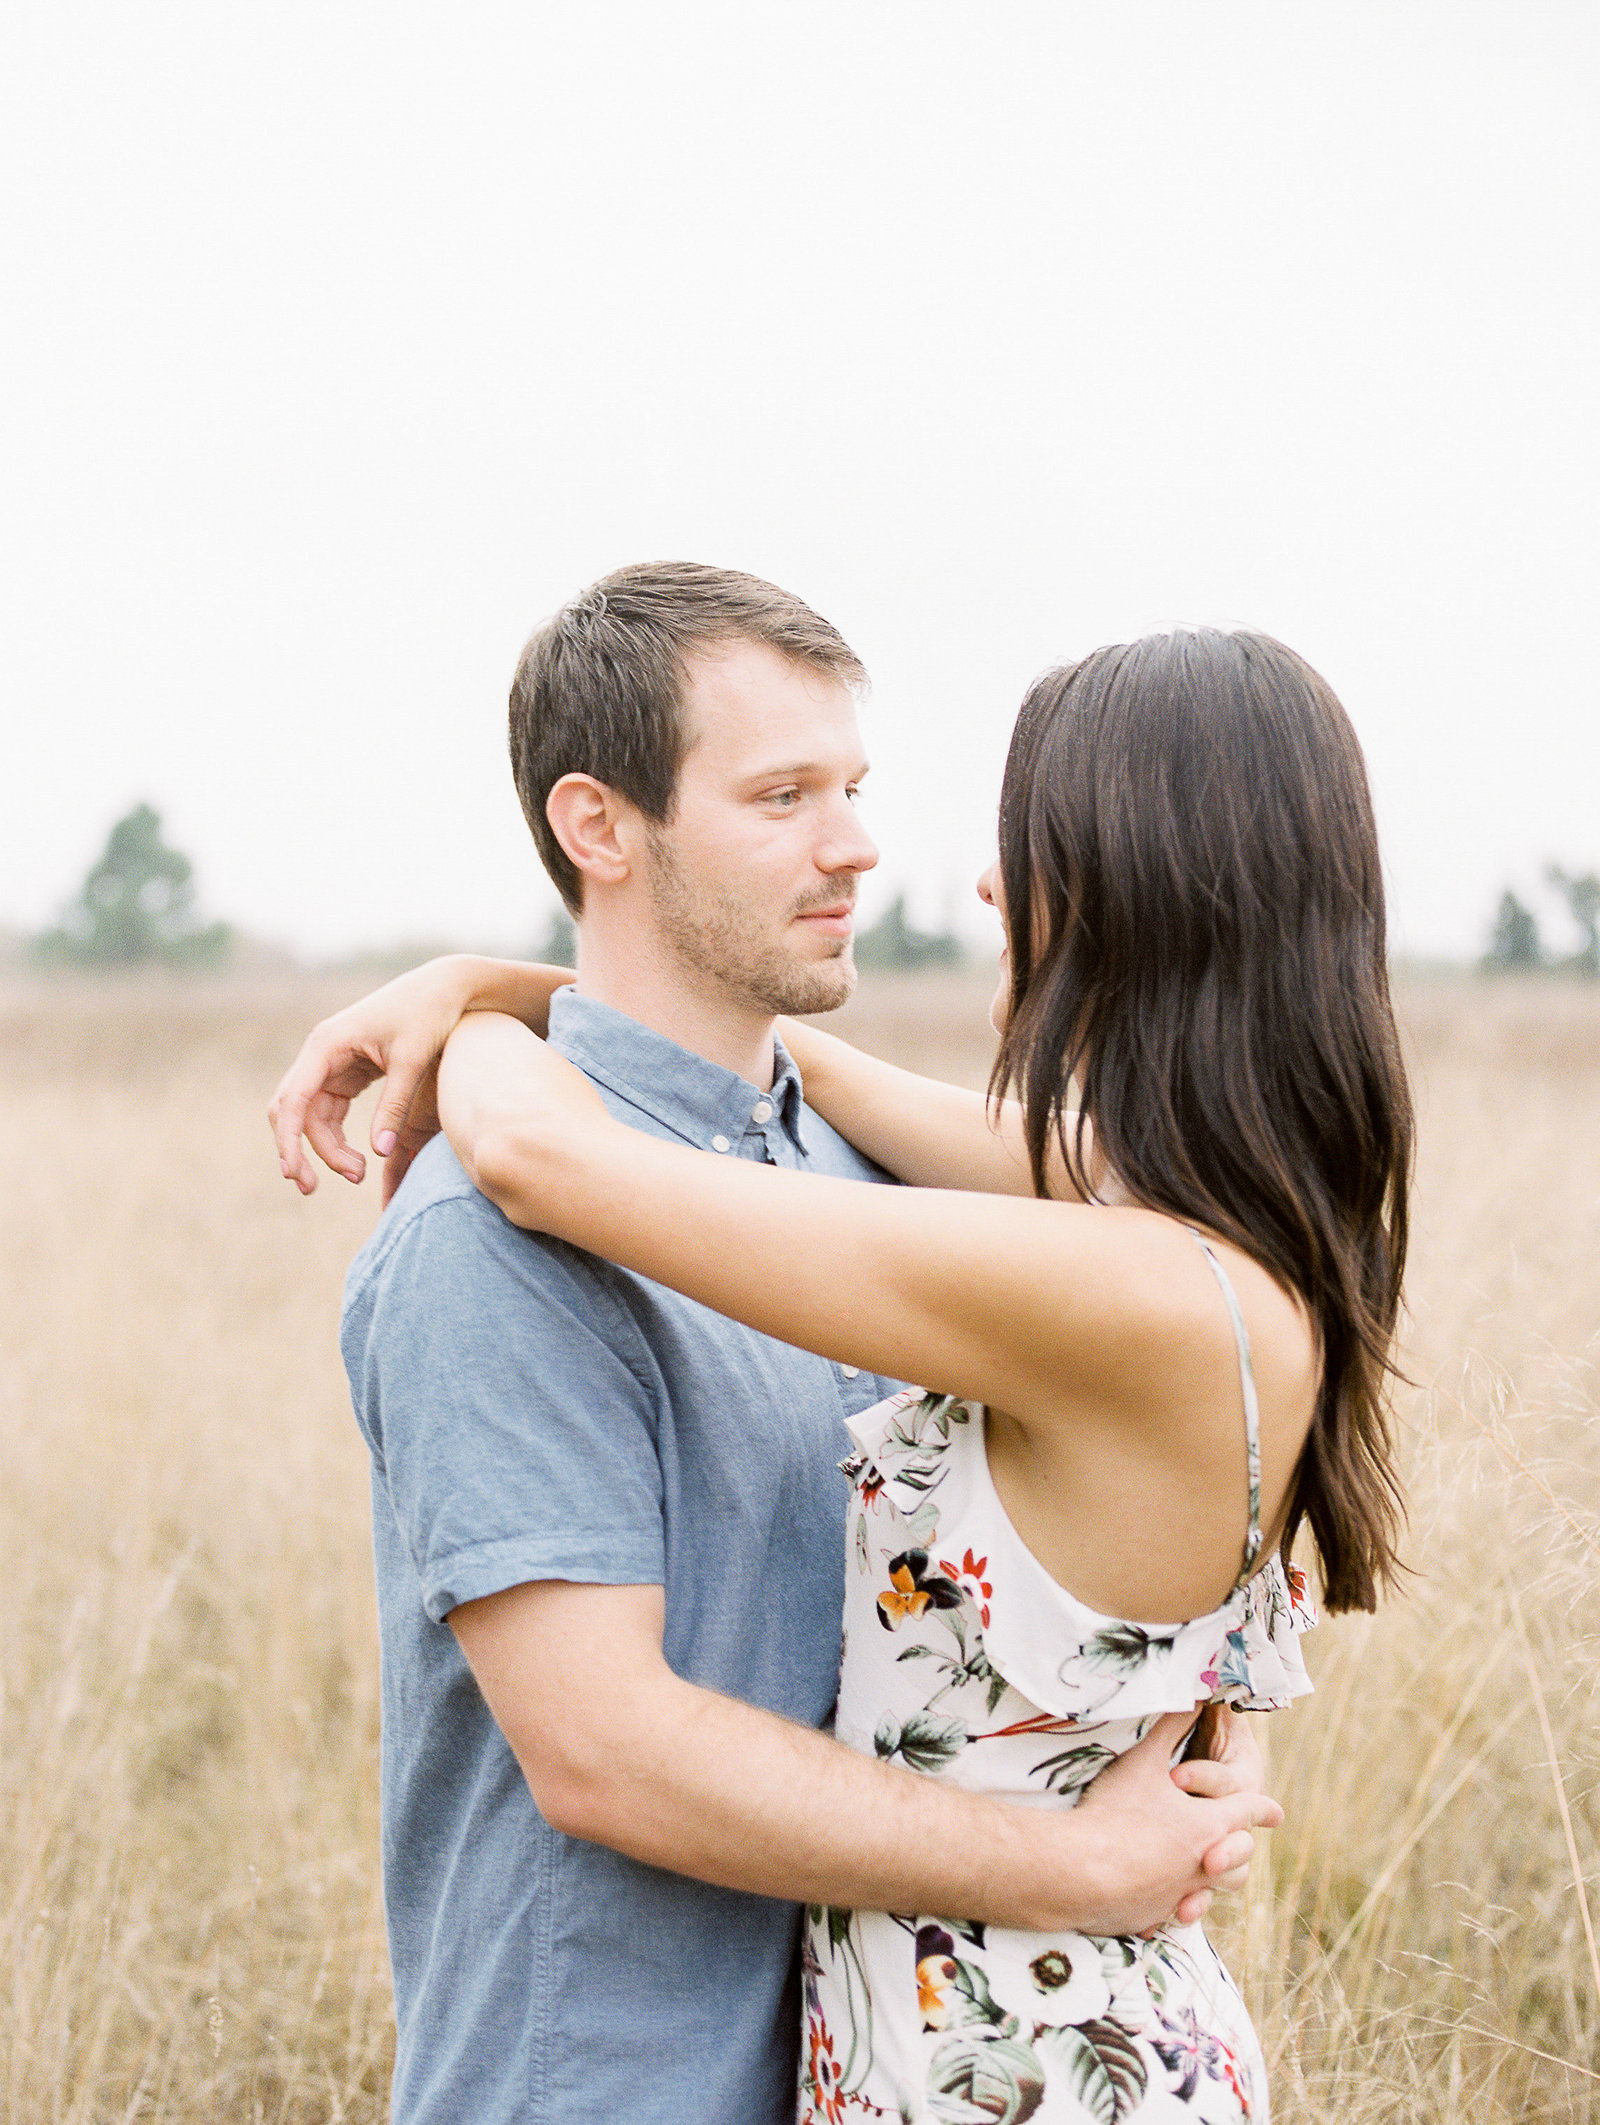 Taylor-TJ-Engagements-Georgia-Ruth-Photography-54